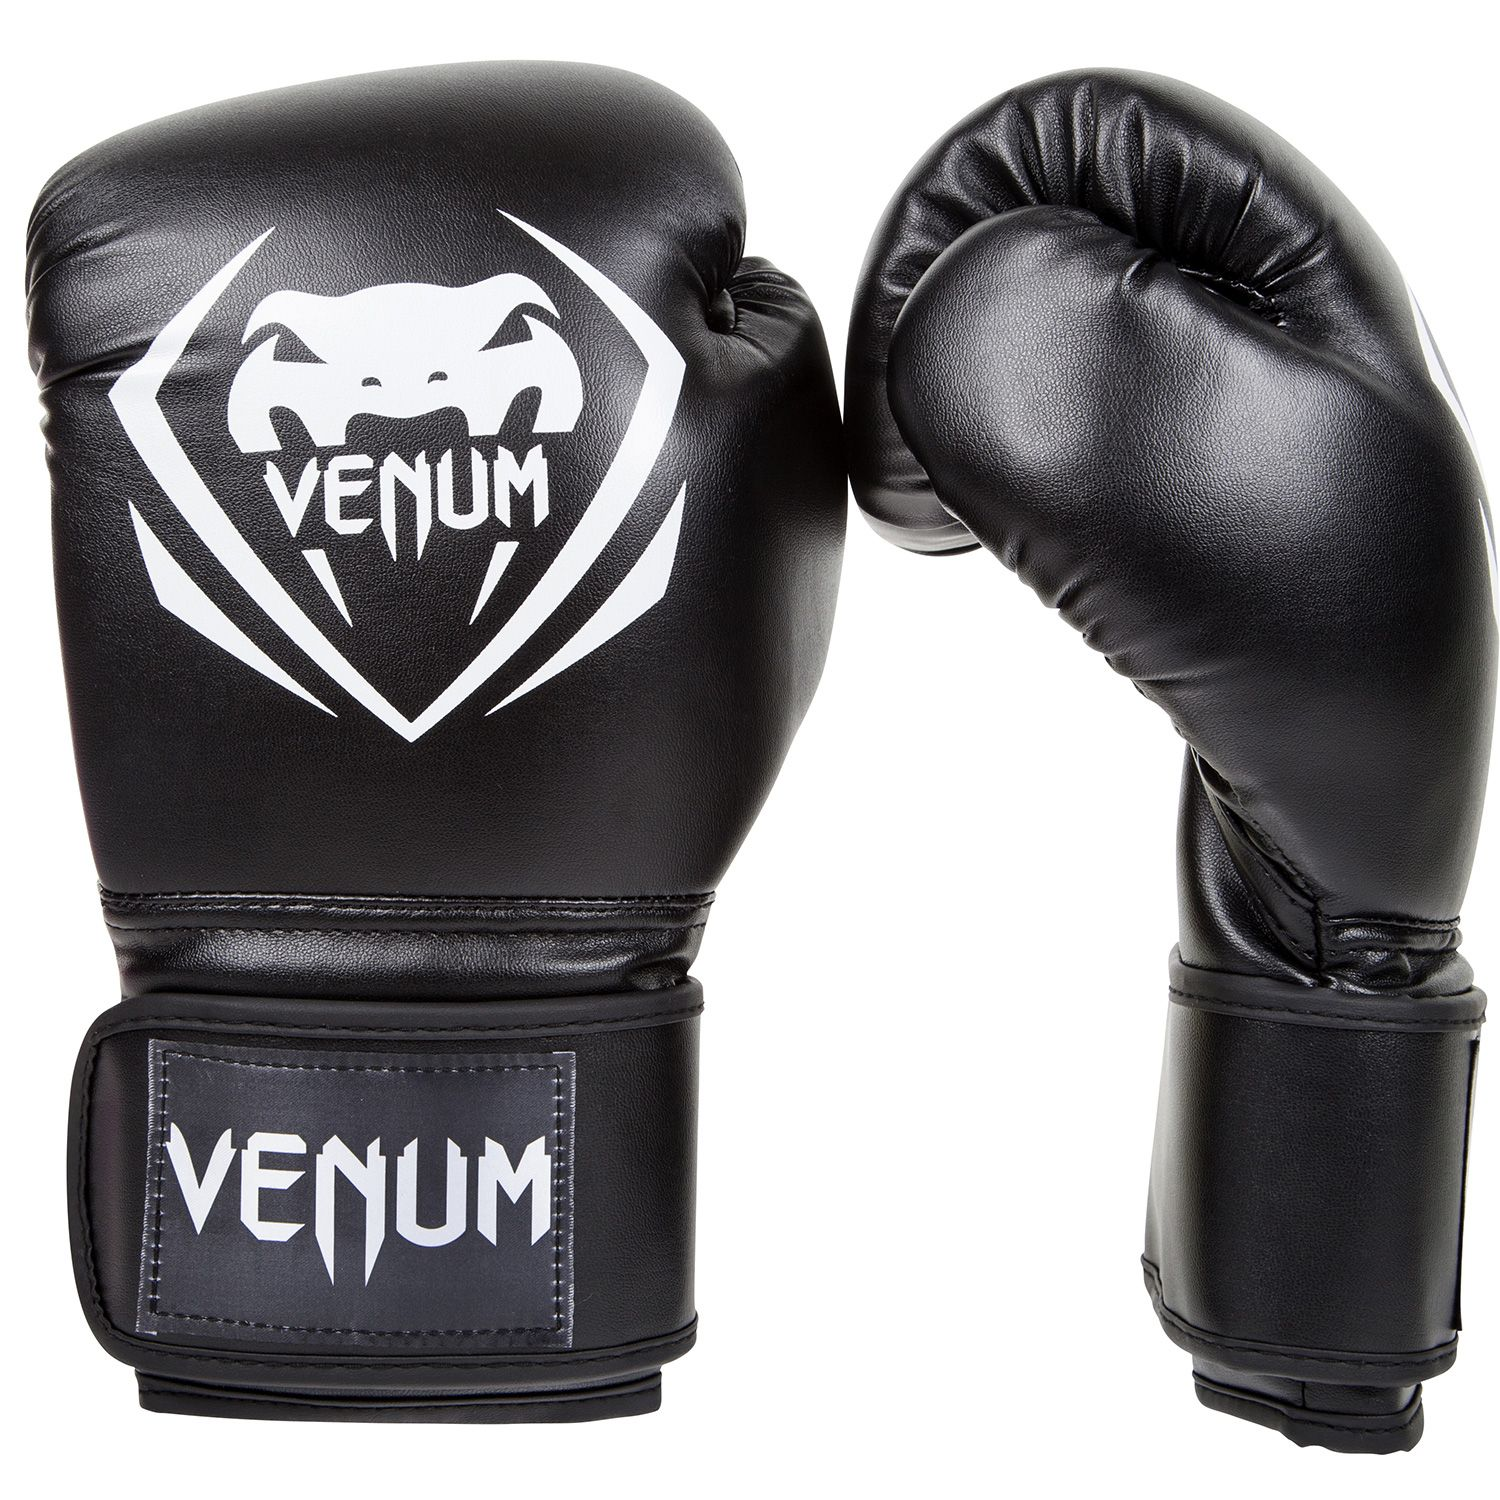 Venum Contender Boxing Gloves - Pink - 12-Ounce